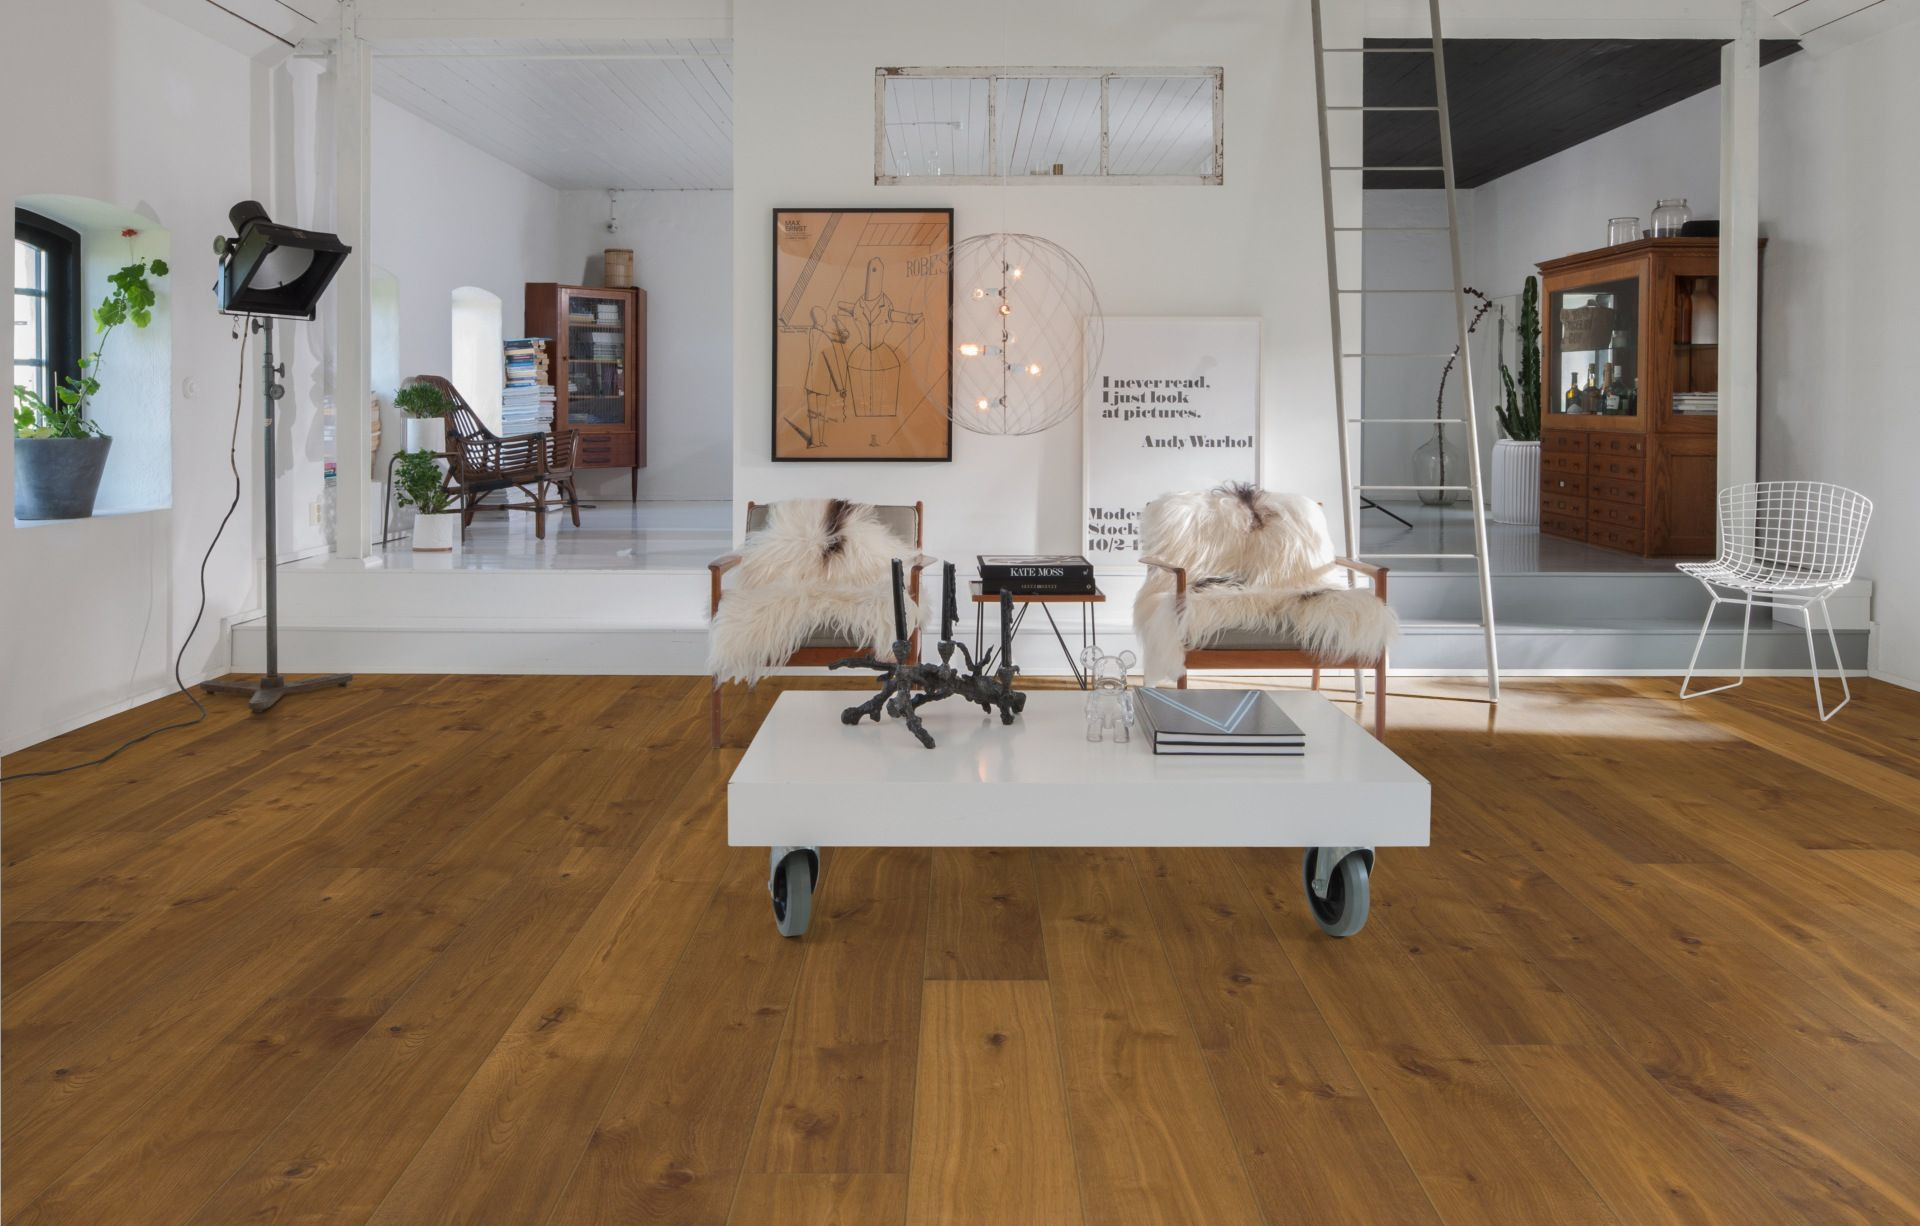 kahrs engineered hardwood flooring reviews of sevede poda'oga pinterest with quality wood flooring in oak walnut and other wood species in multiple designs be inspired compare floors find your favourite hardwood floor